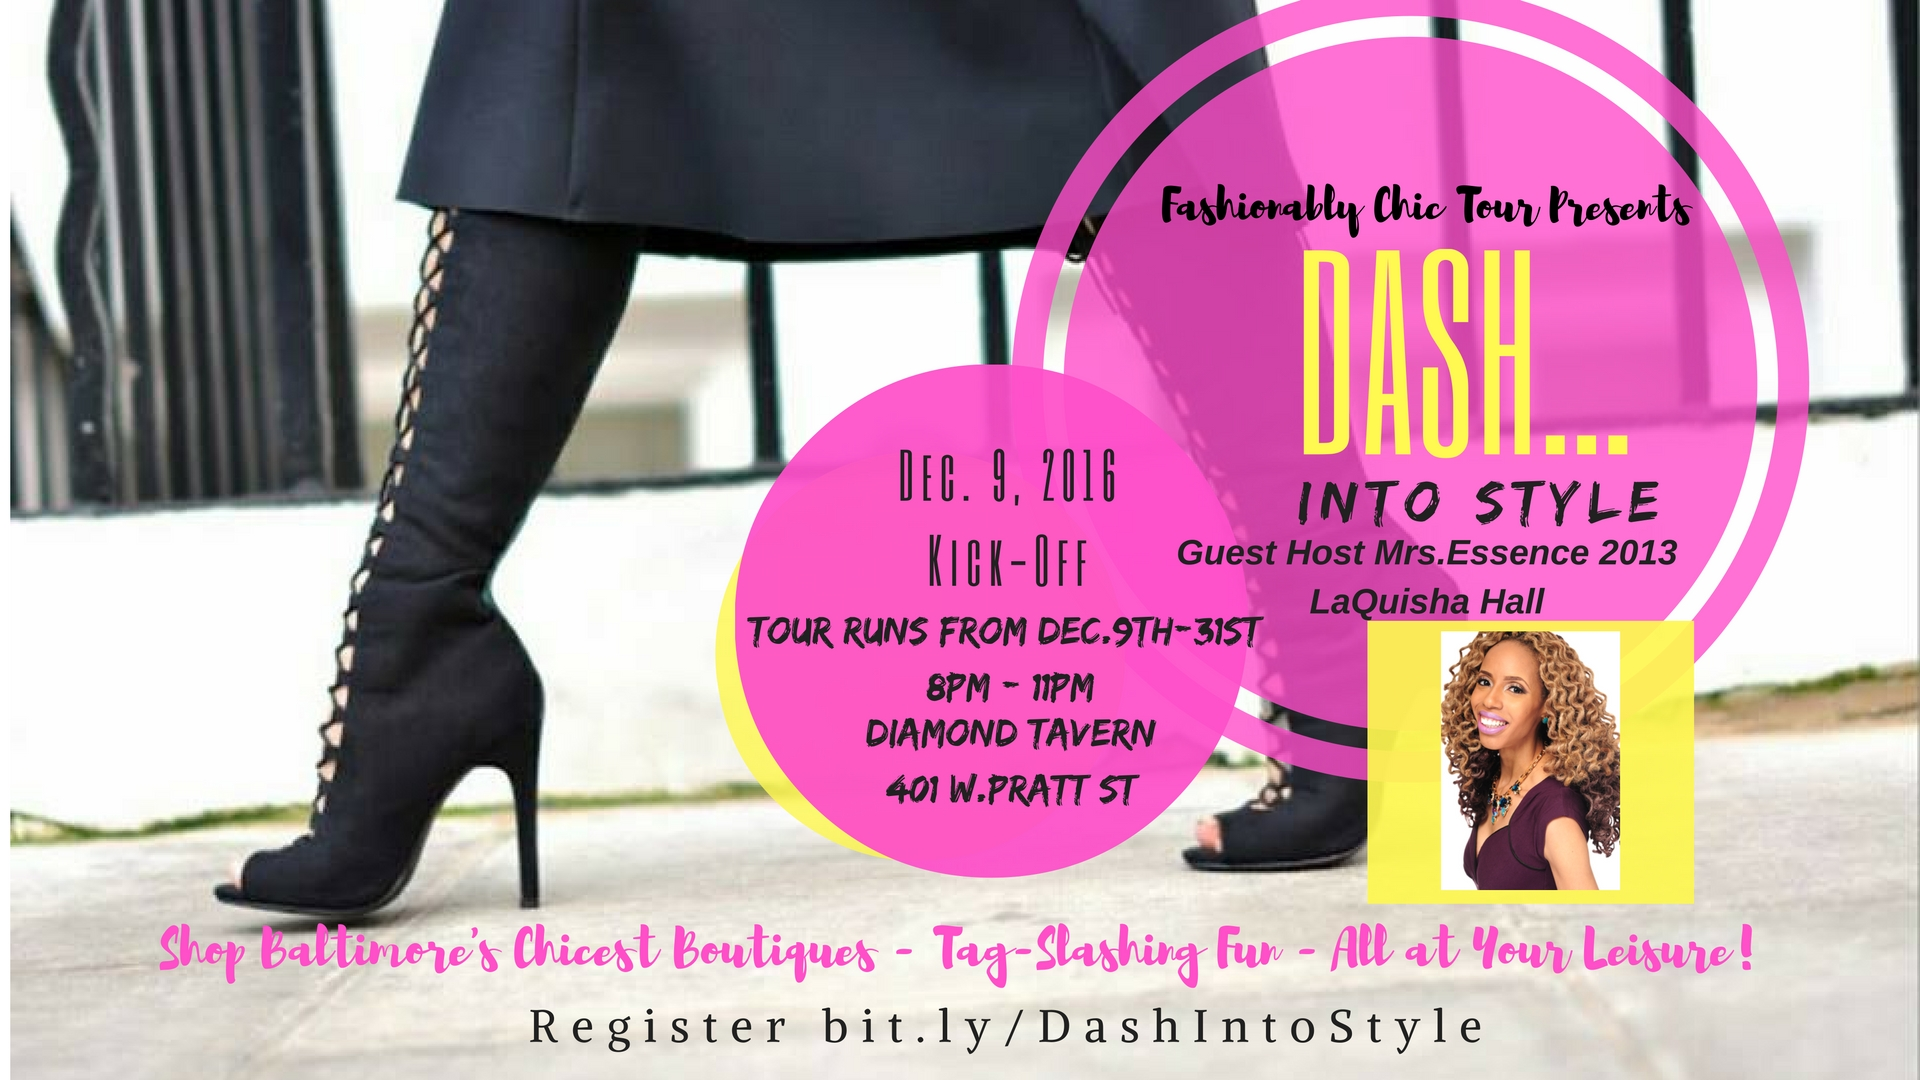 """Dash... Into Style  is hosting a tour kick-off event at The Hiltons' Diamond Tavern. Our style tour guide will showcase fashions and fabulous pieces from a few of the featured boutiques.    We've compiled an amazing collection of our favorite boutiques and luscious eateries in-and-around the Baltimore Metropolitan Area.  Dash...Into Style  tours are designed to give you a taste of unique shopping experiences mounted with the excitement of tag slashing and fun.     Here's how it works:     Baltimore's Fabulous boutiques,1 eatery. It's a taste of Baltimore's chicest boutiques,curated for the fashionable lady in mind, for your girlfriend who's always calling your girls for suggestions to the hottest places to shop, and for the woman who's body conscious and wants to re-define her style! You will be given a sneak peek from the boutique owners as to what to expect during the tour. We will have parking pointers as you dash in & out of the boutiques. It's shopping at your leisure and the tour starts Dec.9th, 2016 and ends Dec. 31st, 2016! That's 4 weeks of fabulous shopping...and you may say """"I can do this on my own! But,at Fashionably Chic Tour,we don't do boring dahling! It's your ultimate shopping experience!      Each week there will be noteworthy giveaways for the guest who completes their Boutique Stamp Card          Please come in your fashionably forward attire!"""